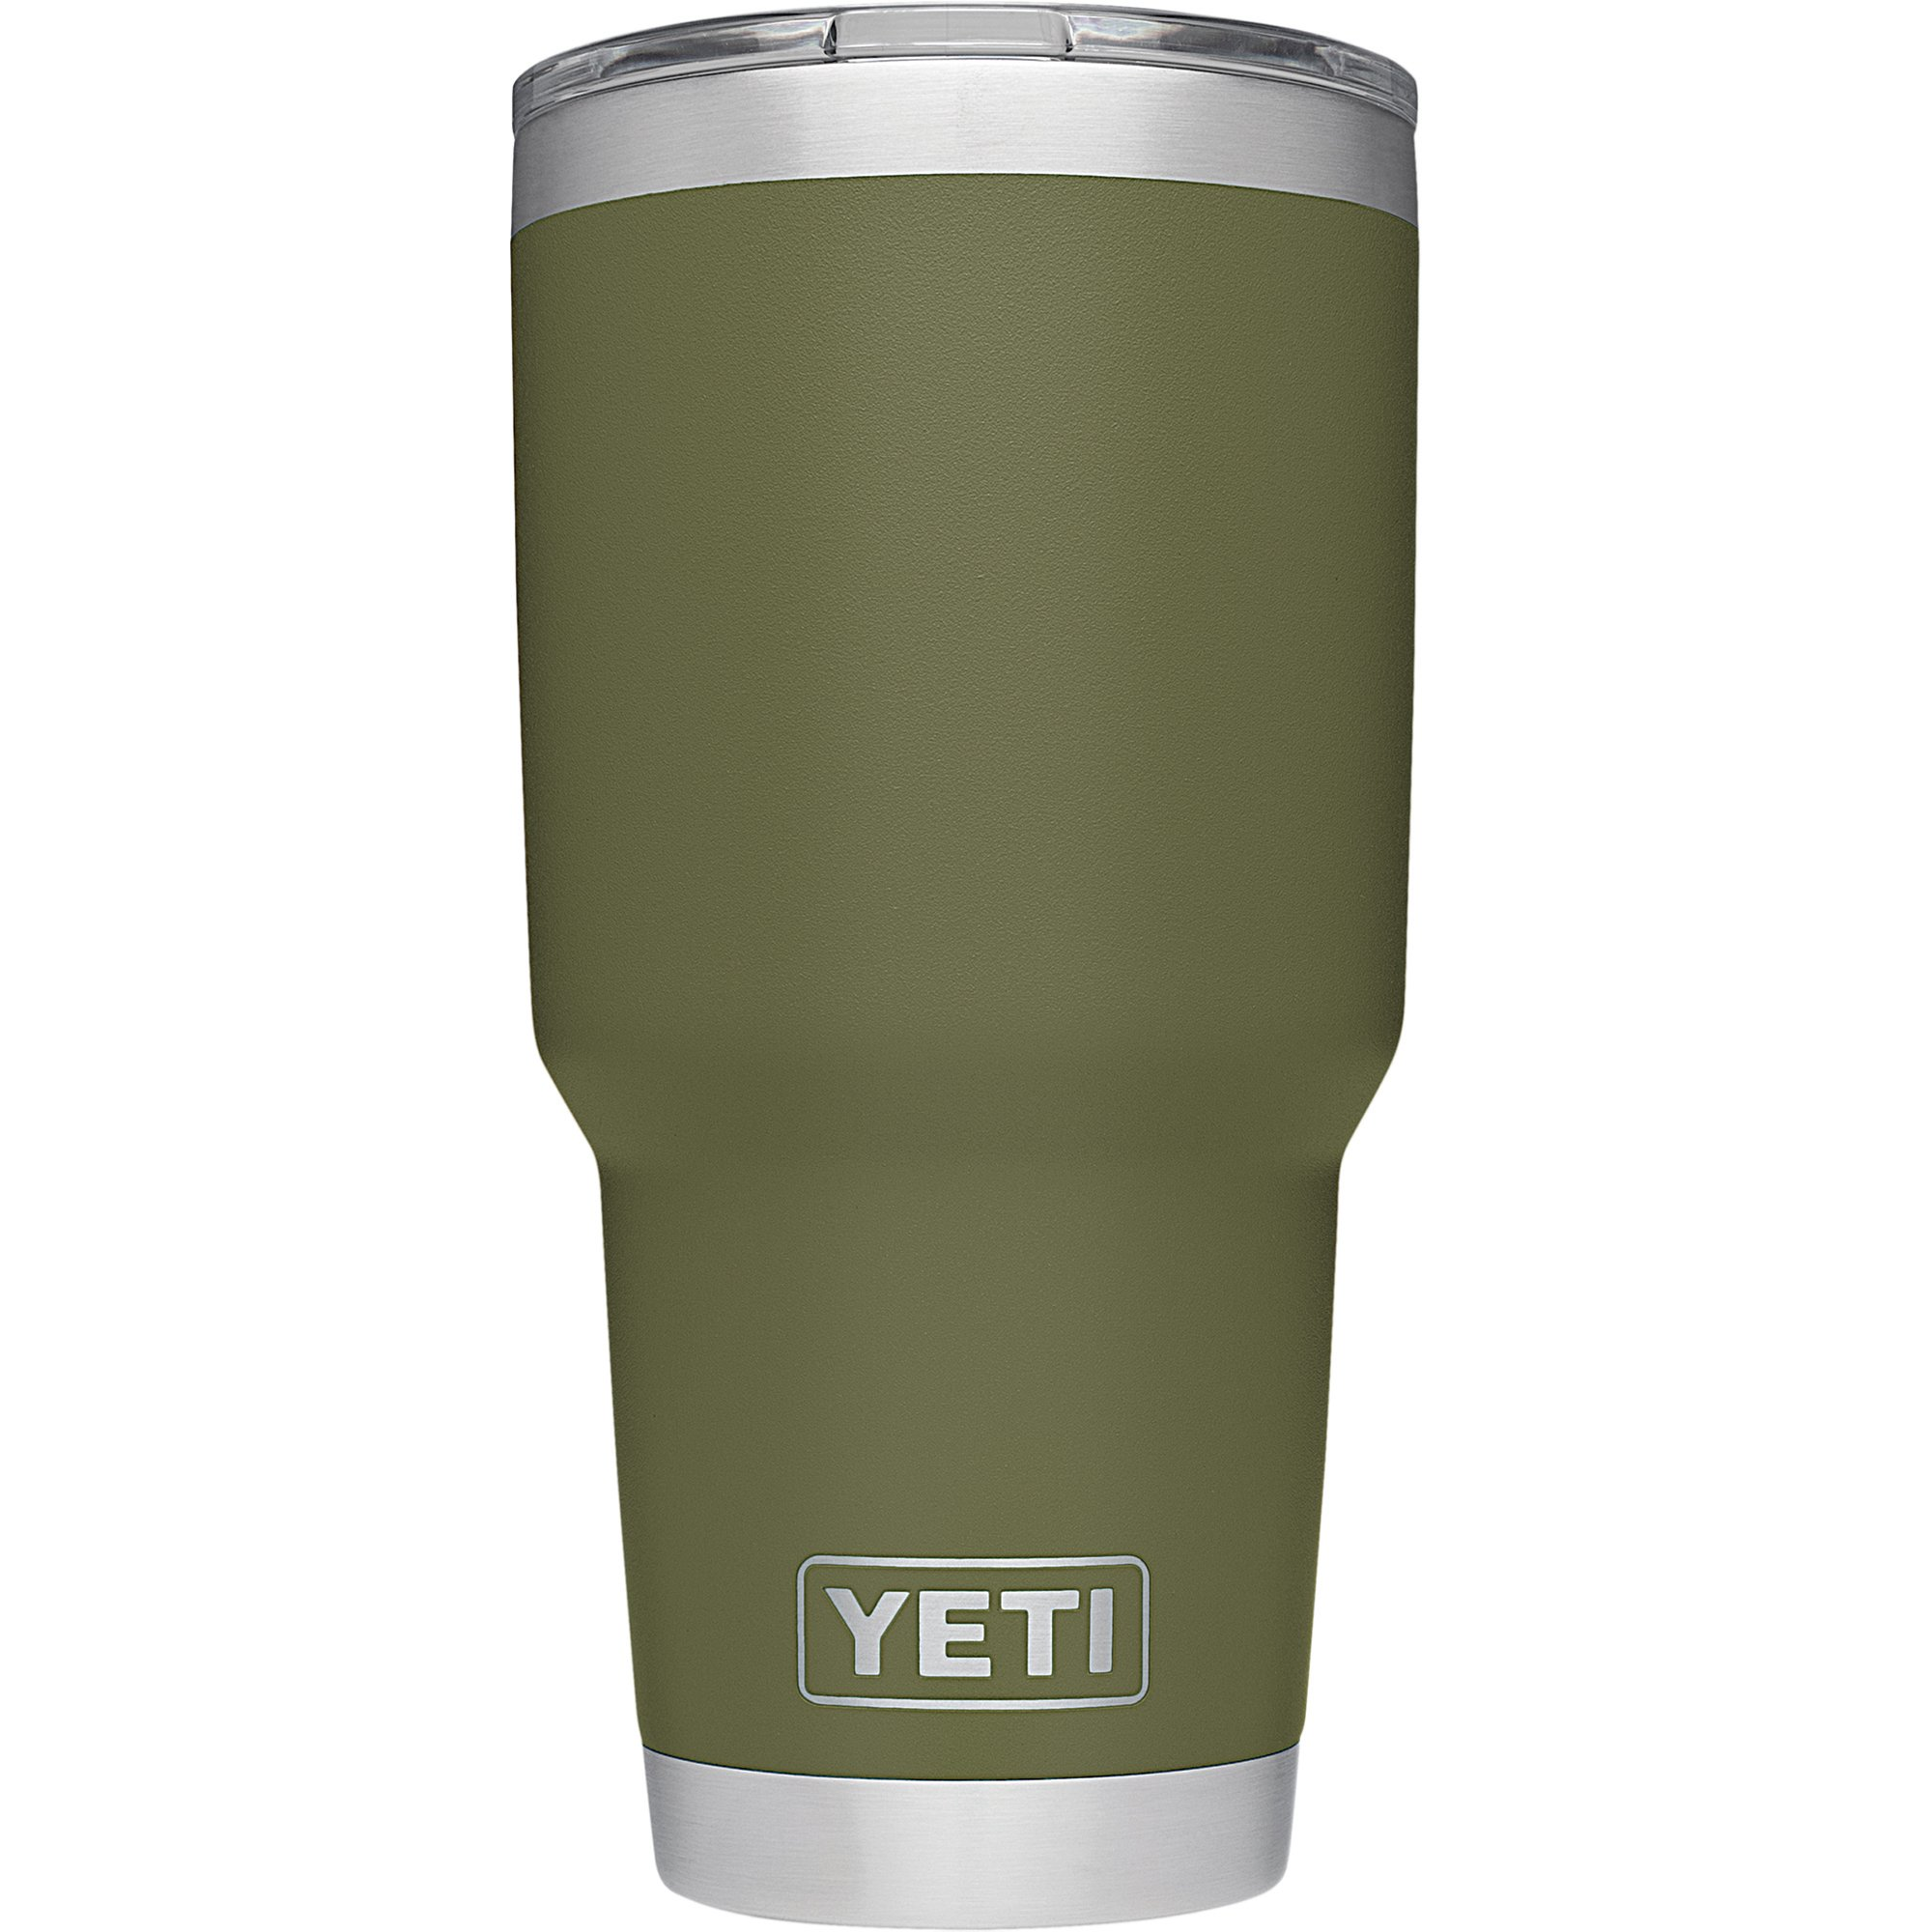 YETI Rambler Stainless Steel Vacuum Insulated Tumbler with Lid, Olive, 30 oz.